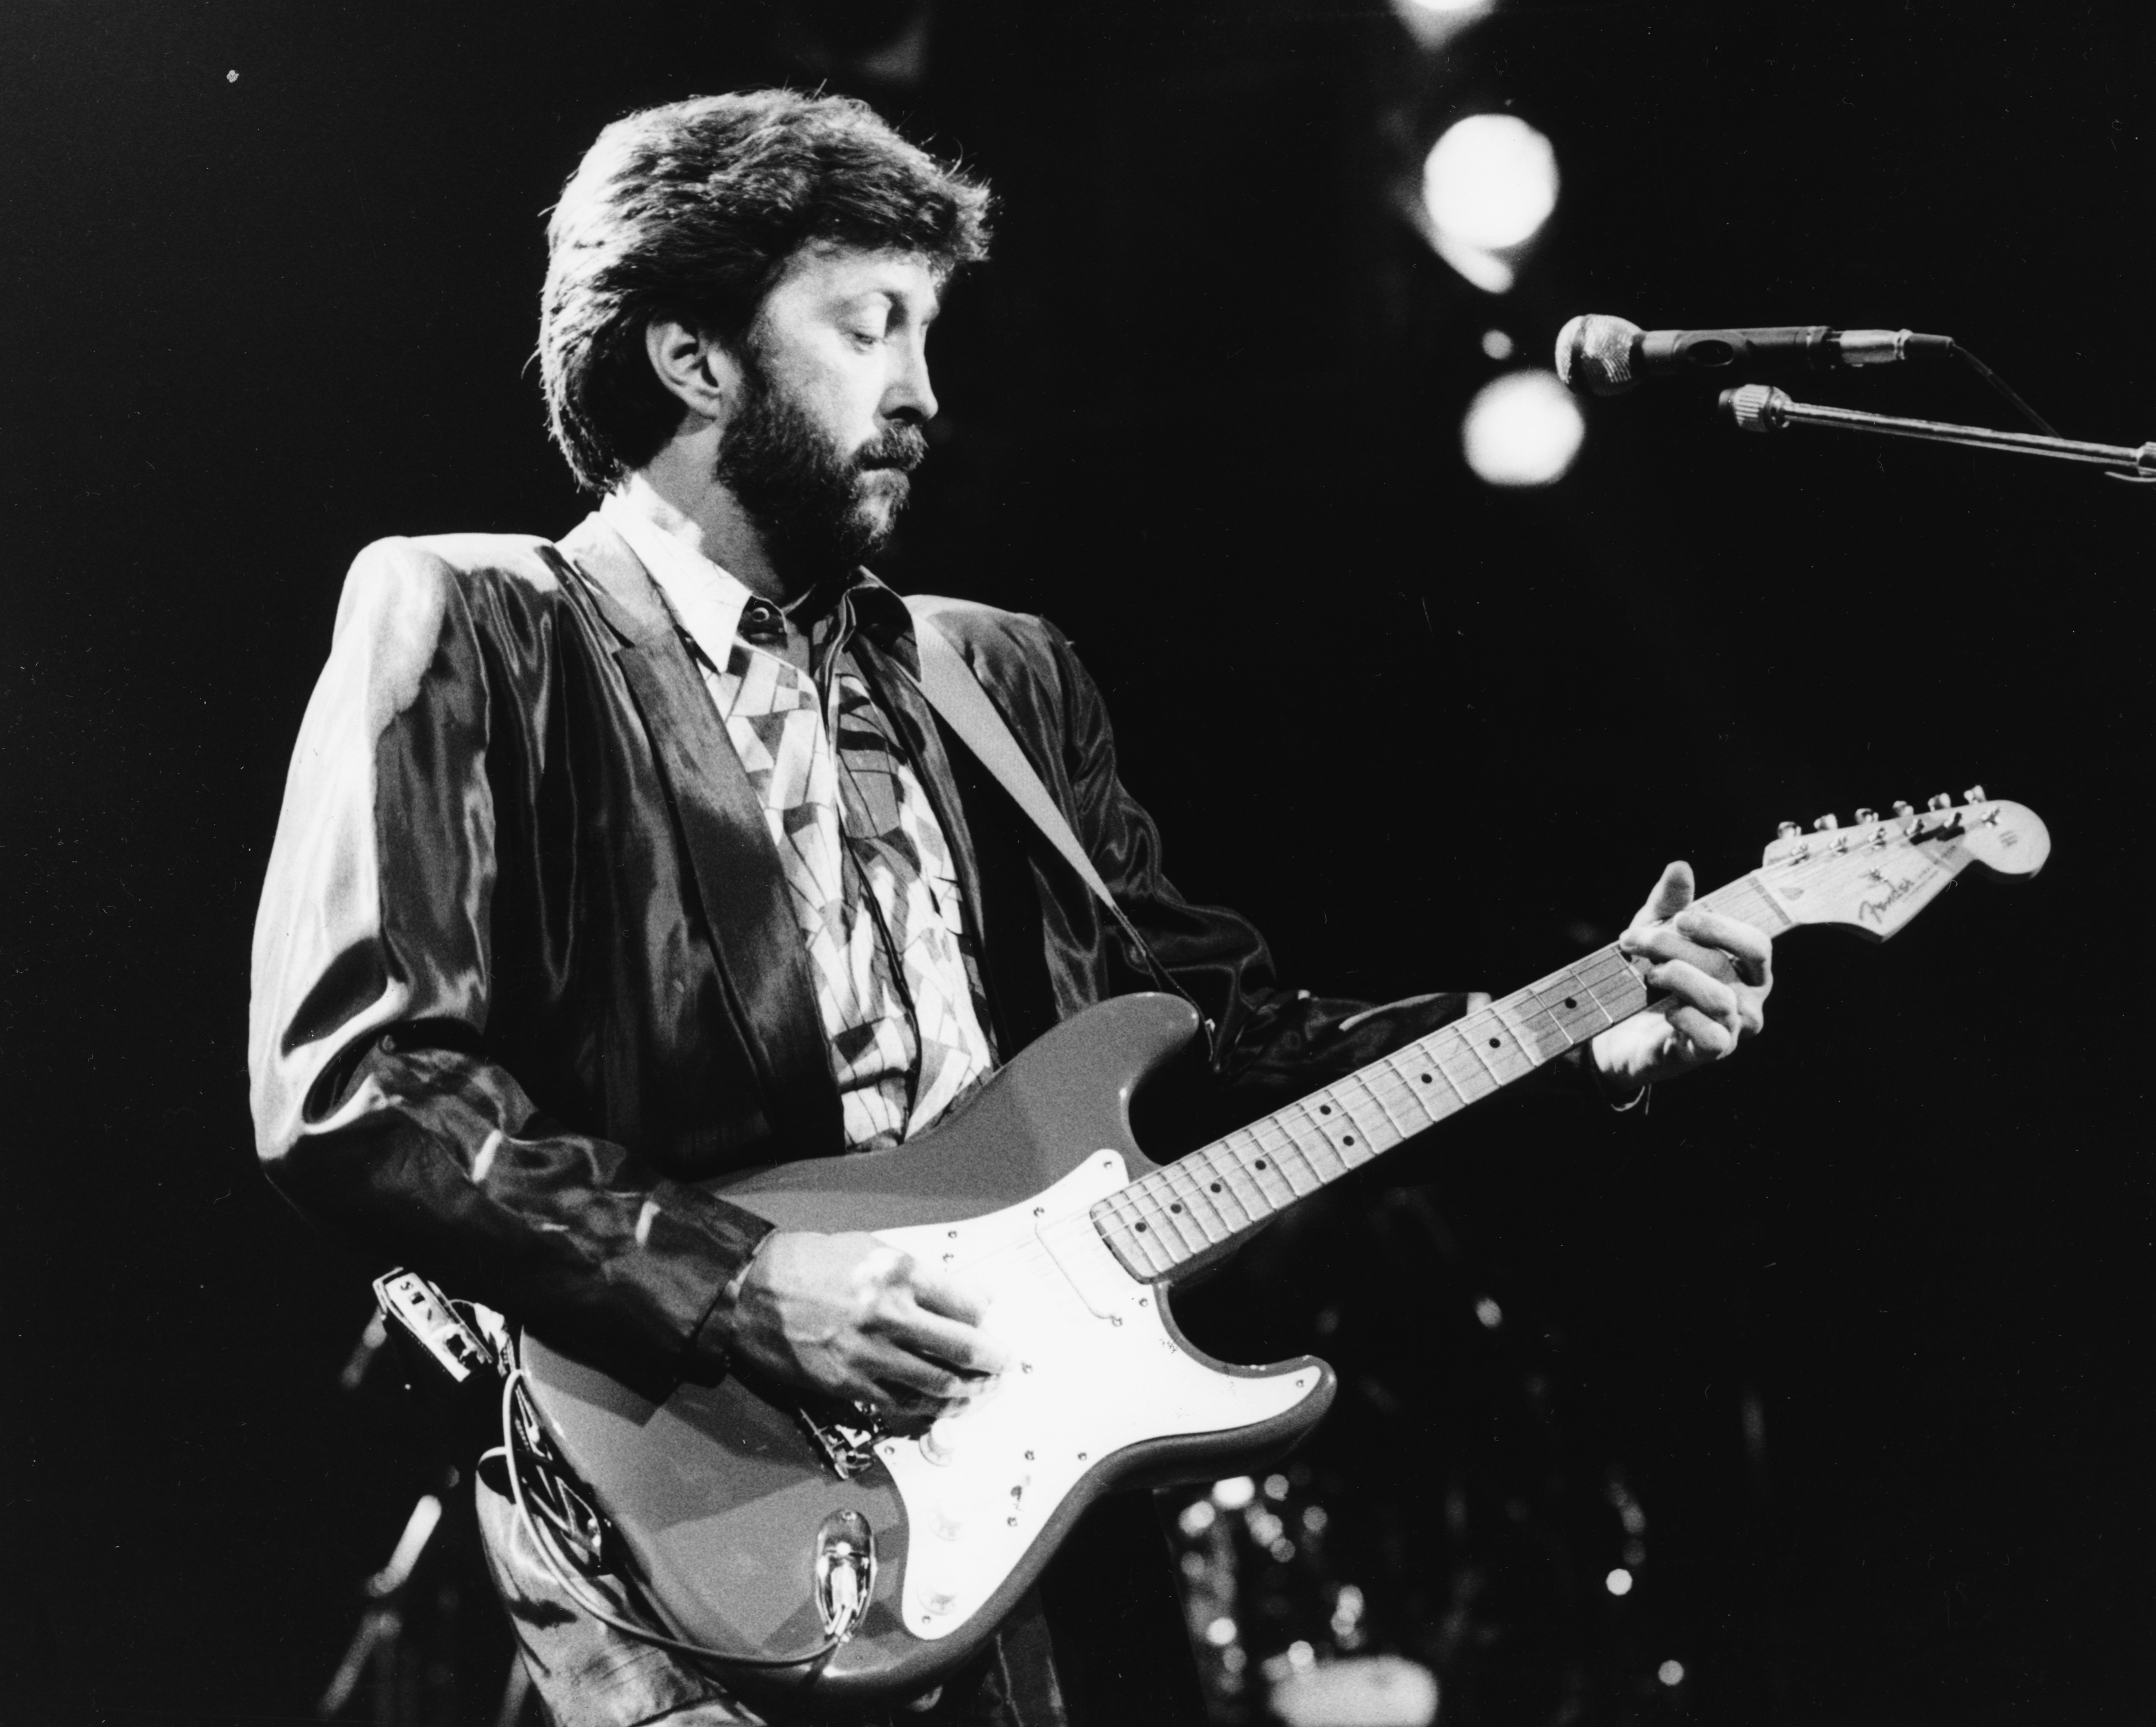 Eric Clapton Documentary 'A Life in 12 Bars' in the Works